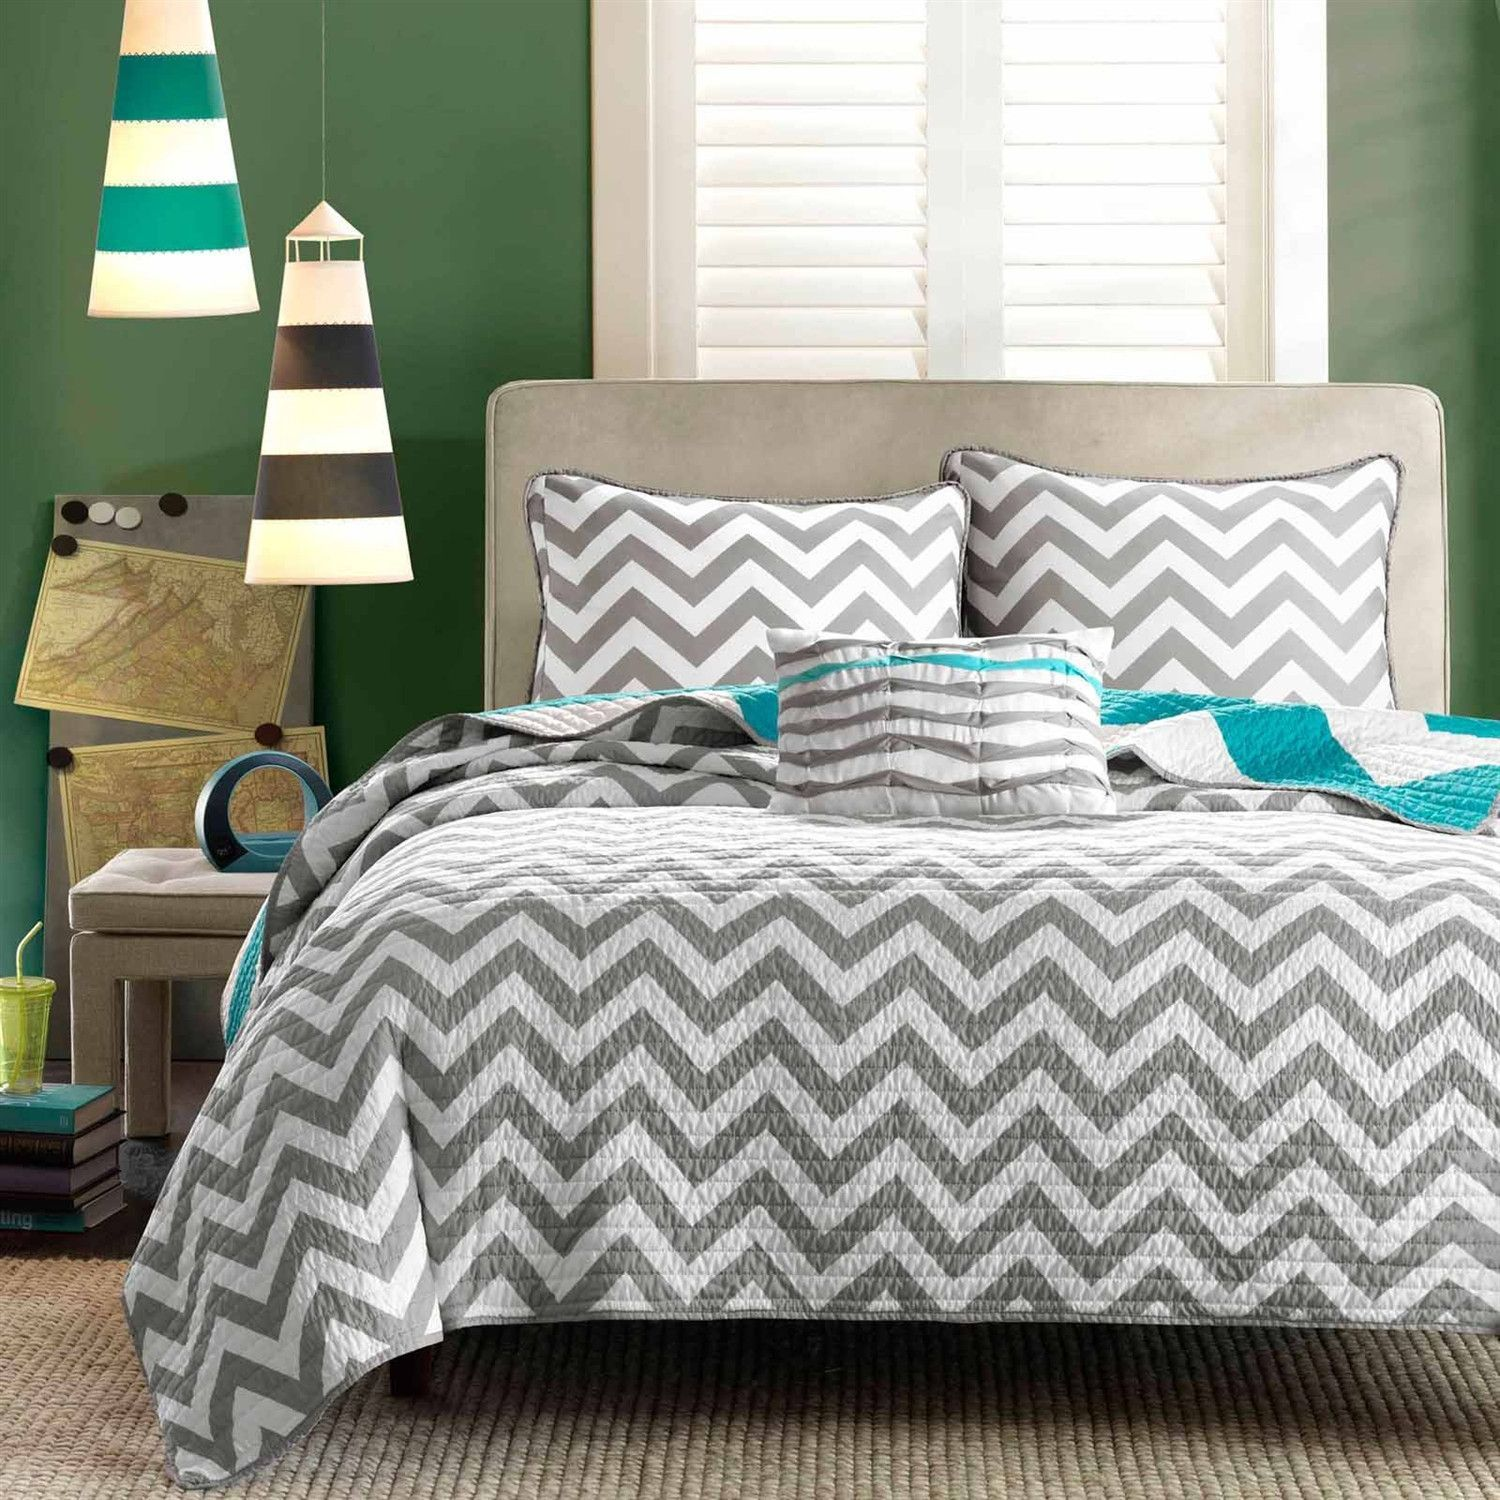 on black voodoolk sheet frame bedroom king sets coverlet down grey delectable sham double quilt size comforter with gray and bedspread queen bedding sheets chevron set quilts